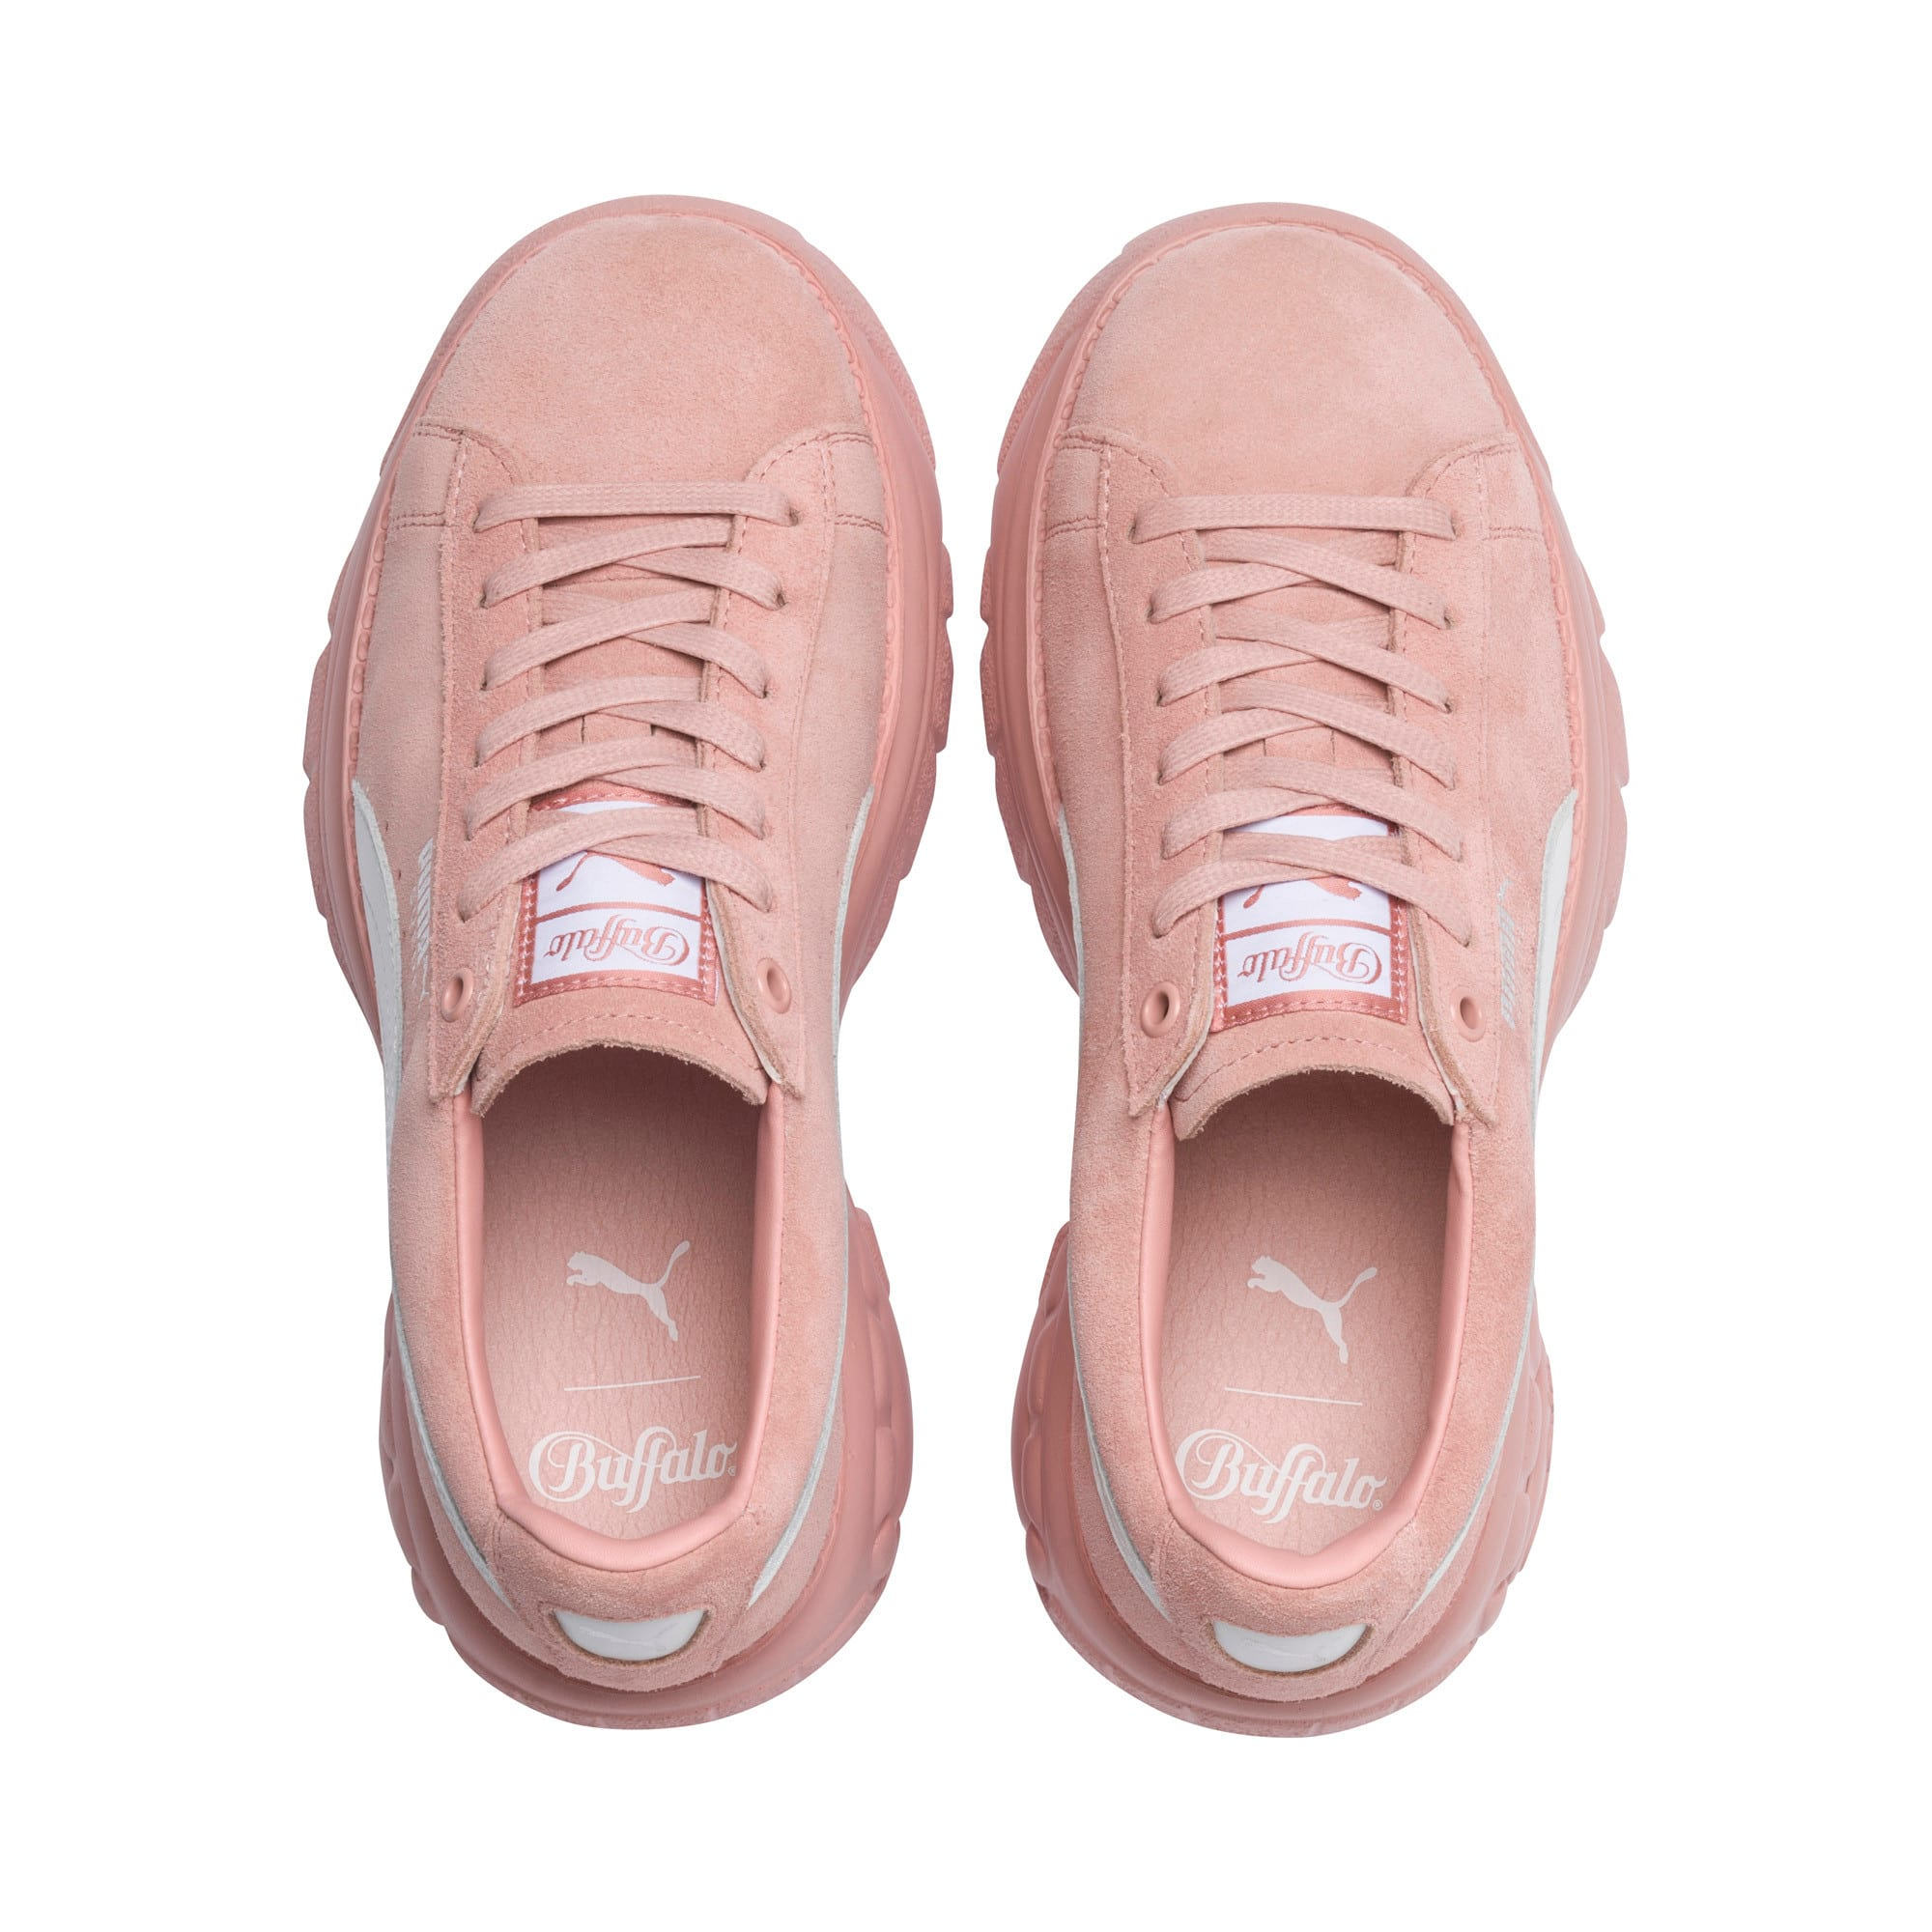 Thumbnail 6 of PUMA x BUFFALO Suede Shoes, Mellow Rose-Puma White, medium